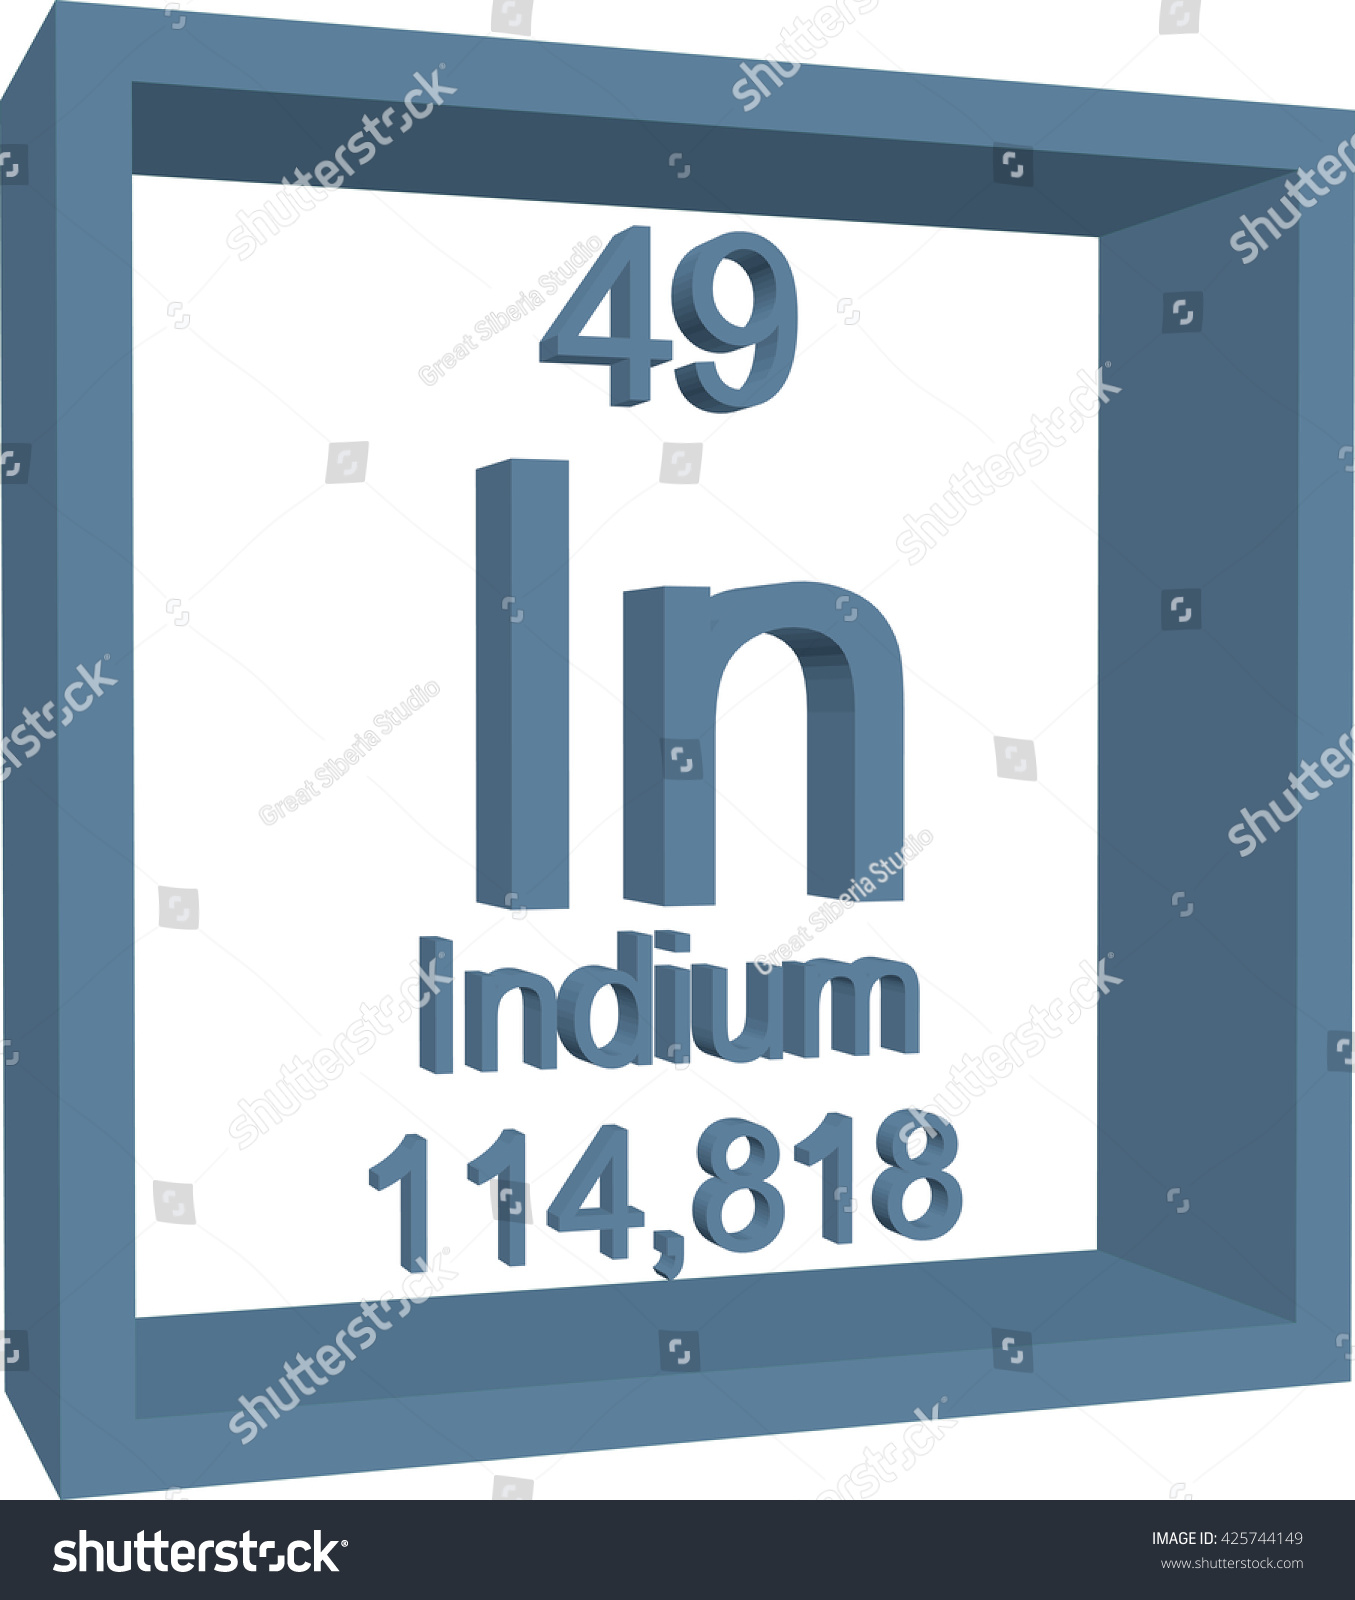 Periodic table elements indium stock vector 425744149 shutterstock periodic table of elements indium gamestrikefo Gallery